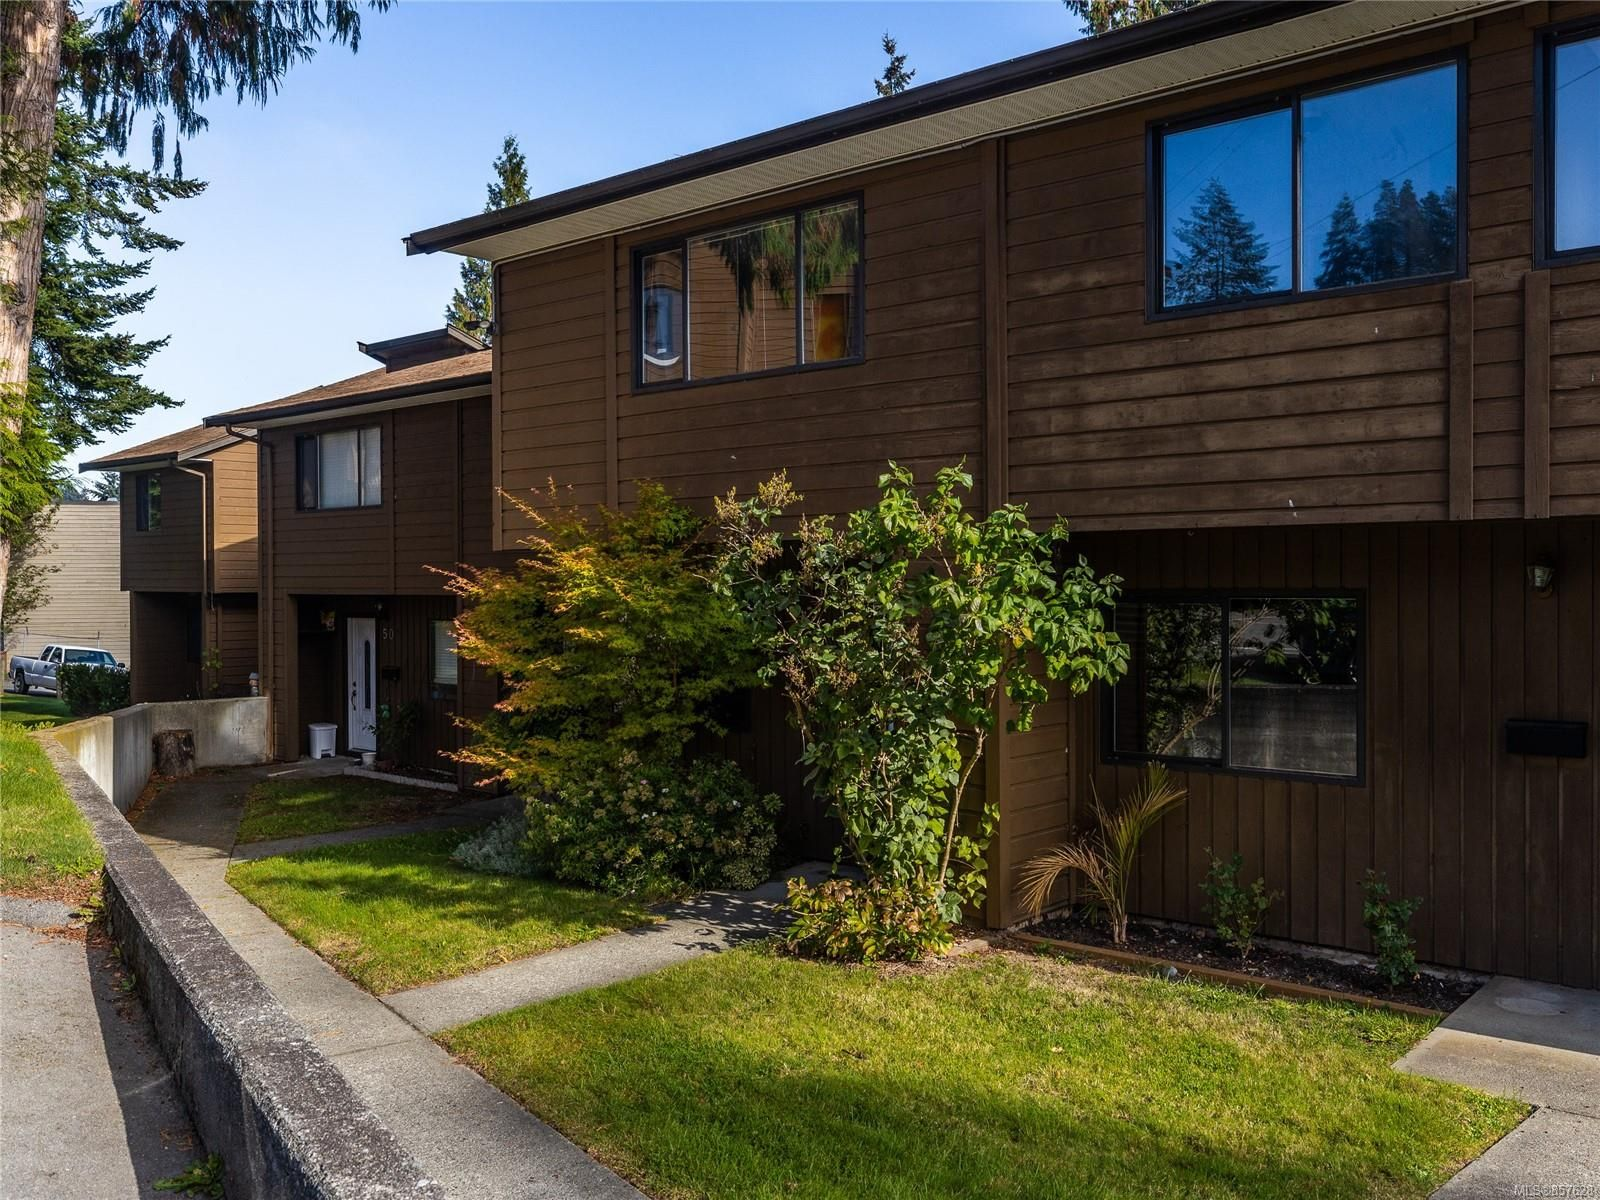 Main Photo: 48 855 HOWARD Ave in : Na South Nanaimo Row/Townhouse for sale (Nanaimo)  : MLS®# 857628